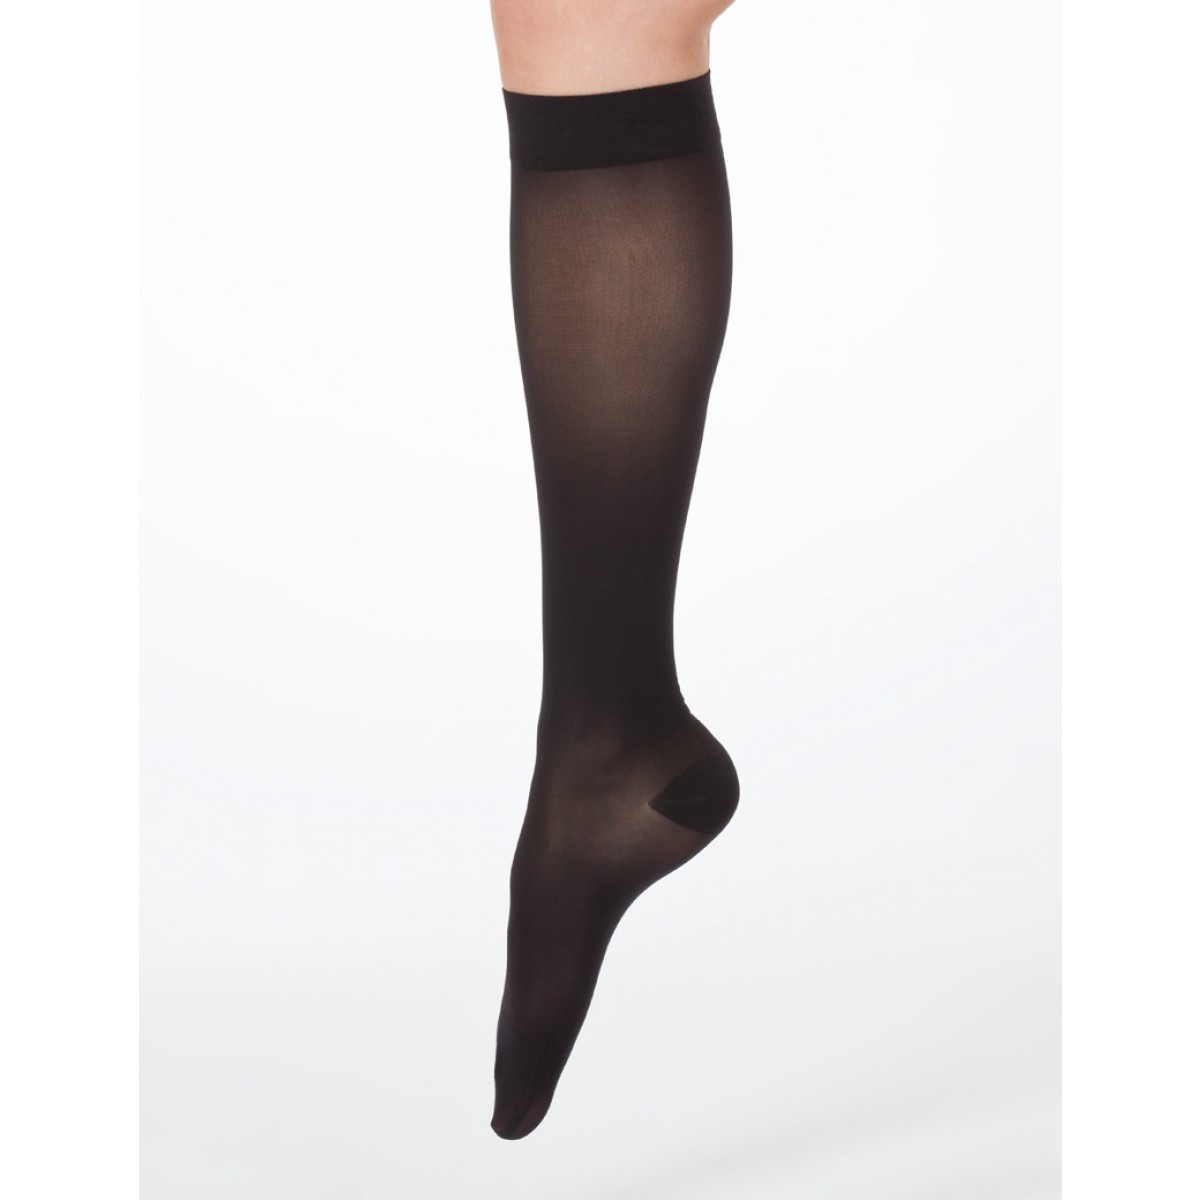 ITEM m6 Knee-high Translucent Black-35